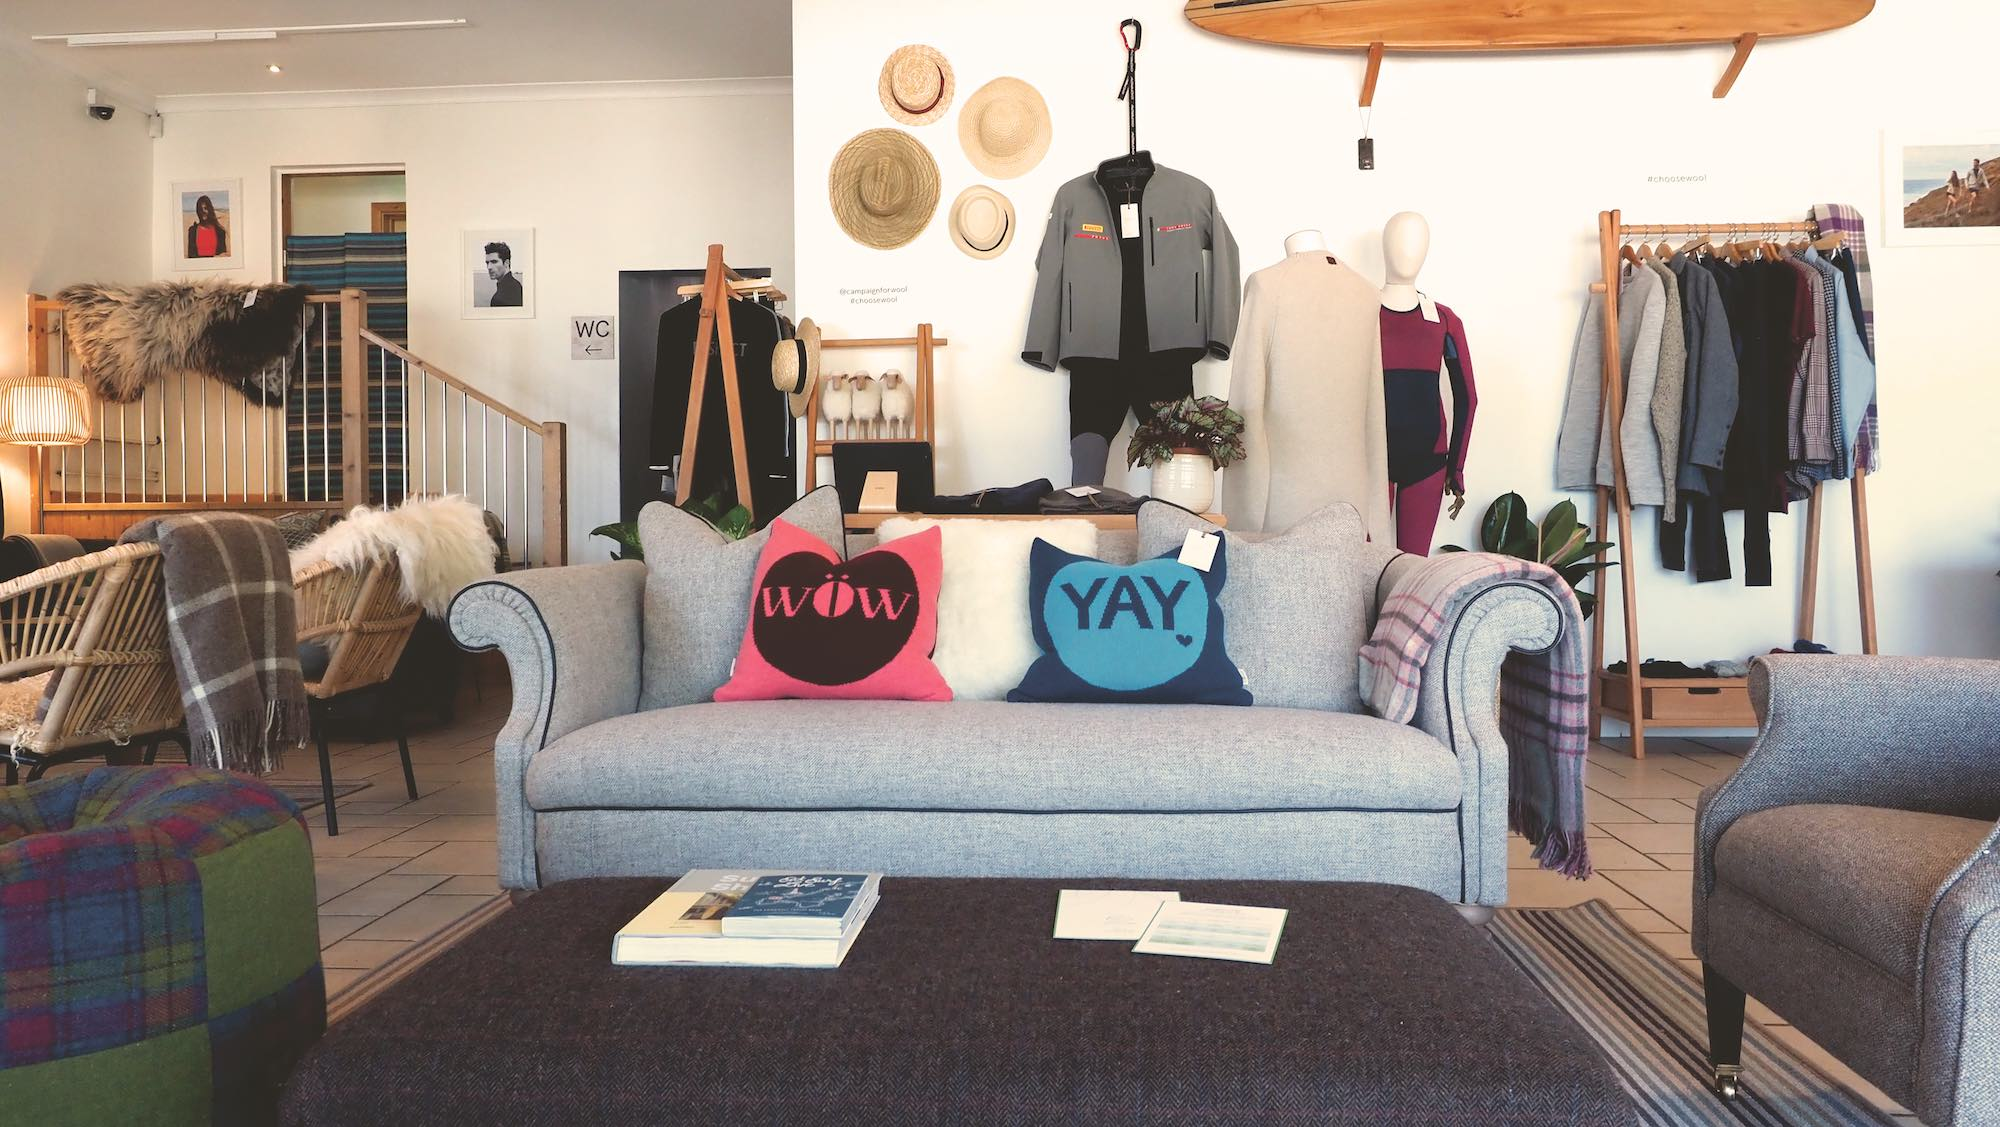 wool beach lodge choose wool campaign